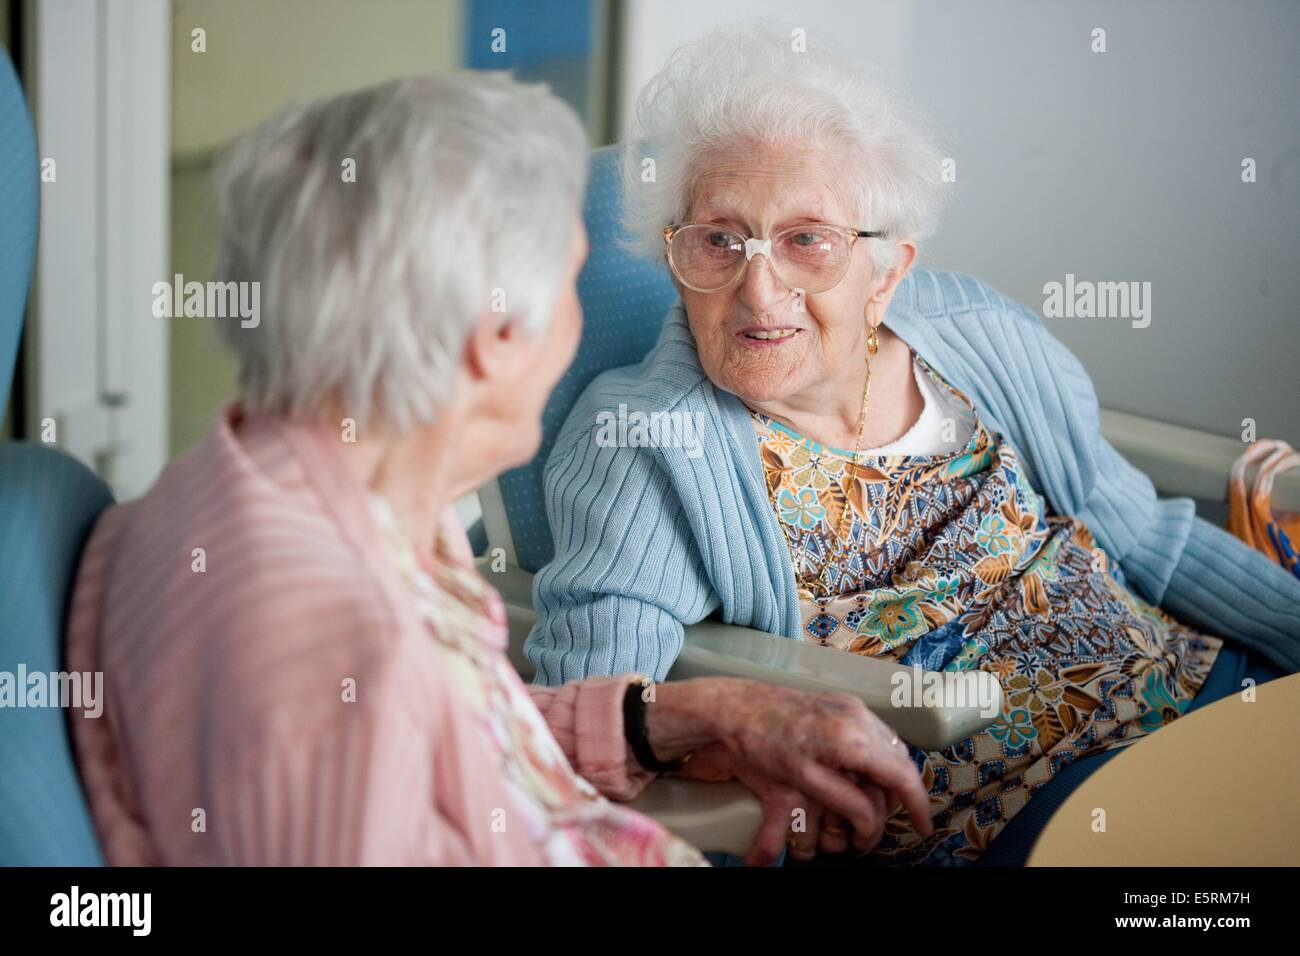 Residential home for dependent elderly person, Limoges, France. - Stock Image